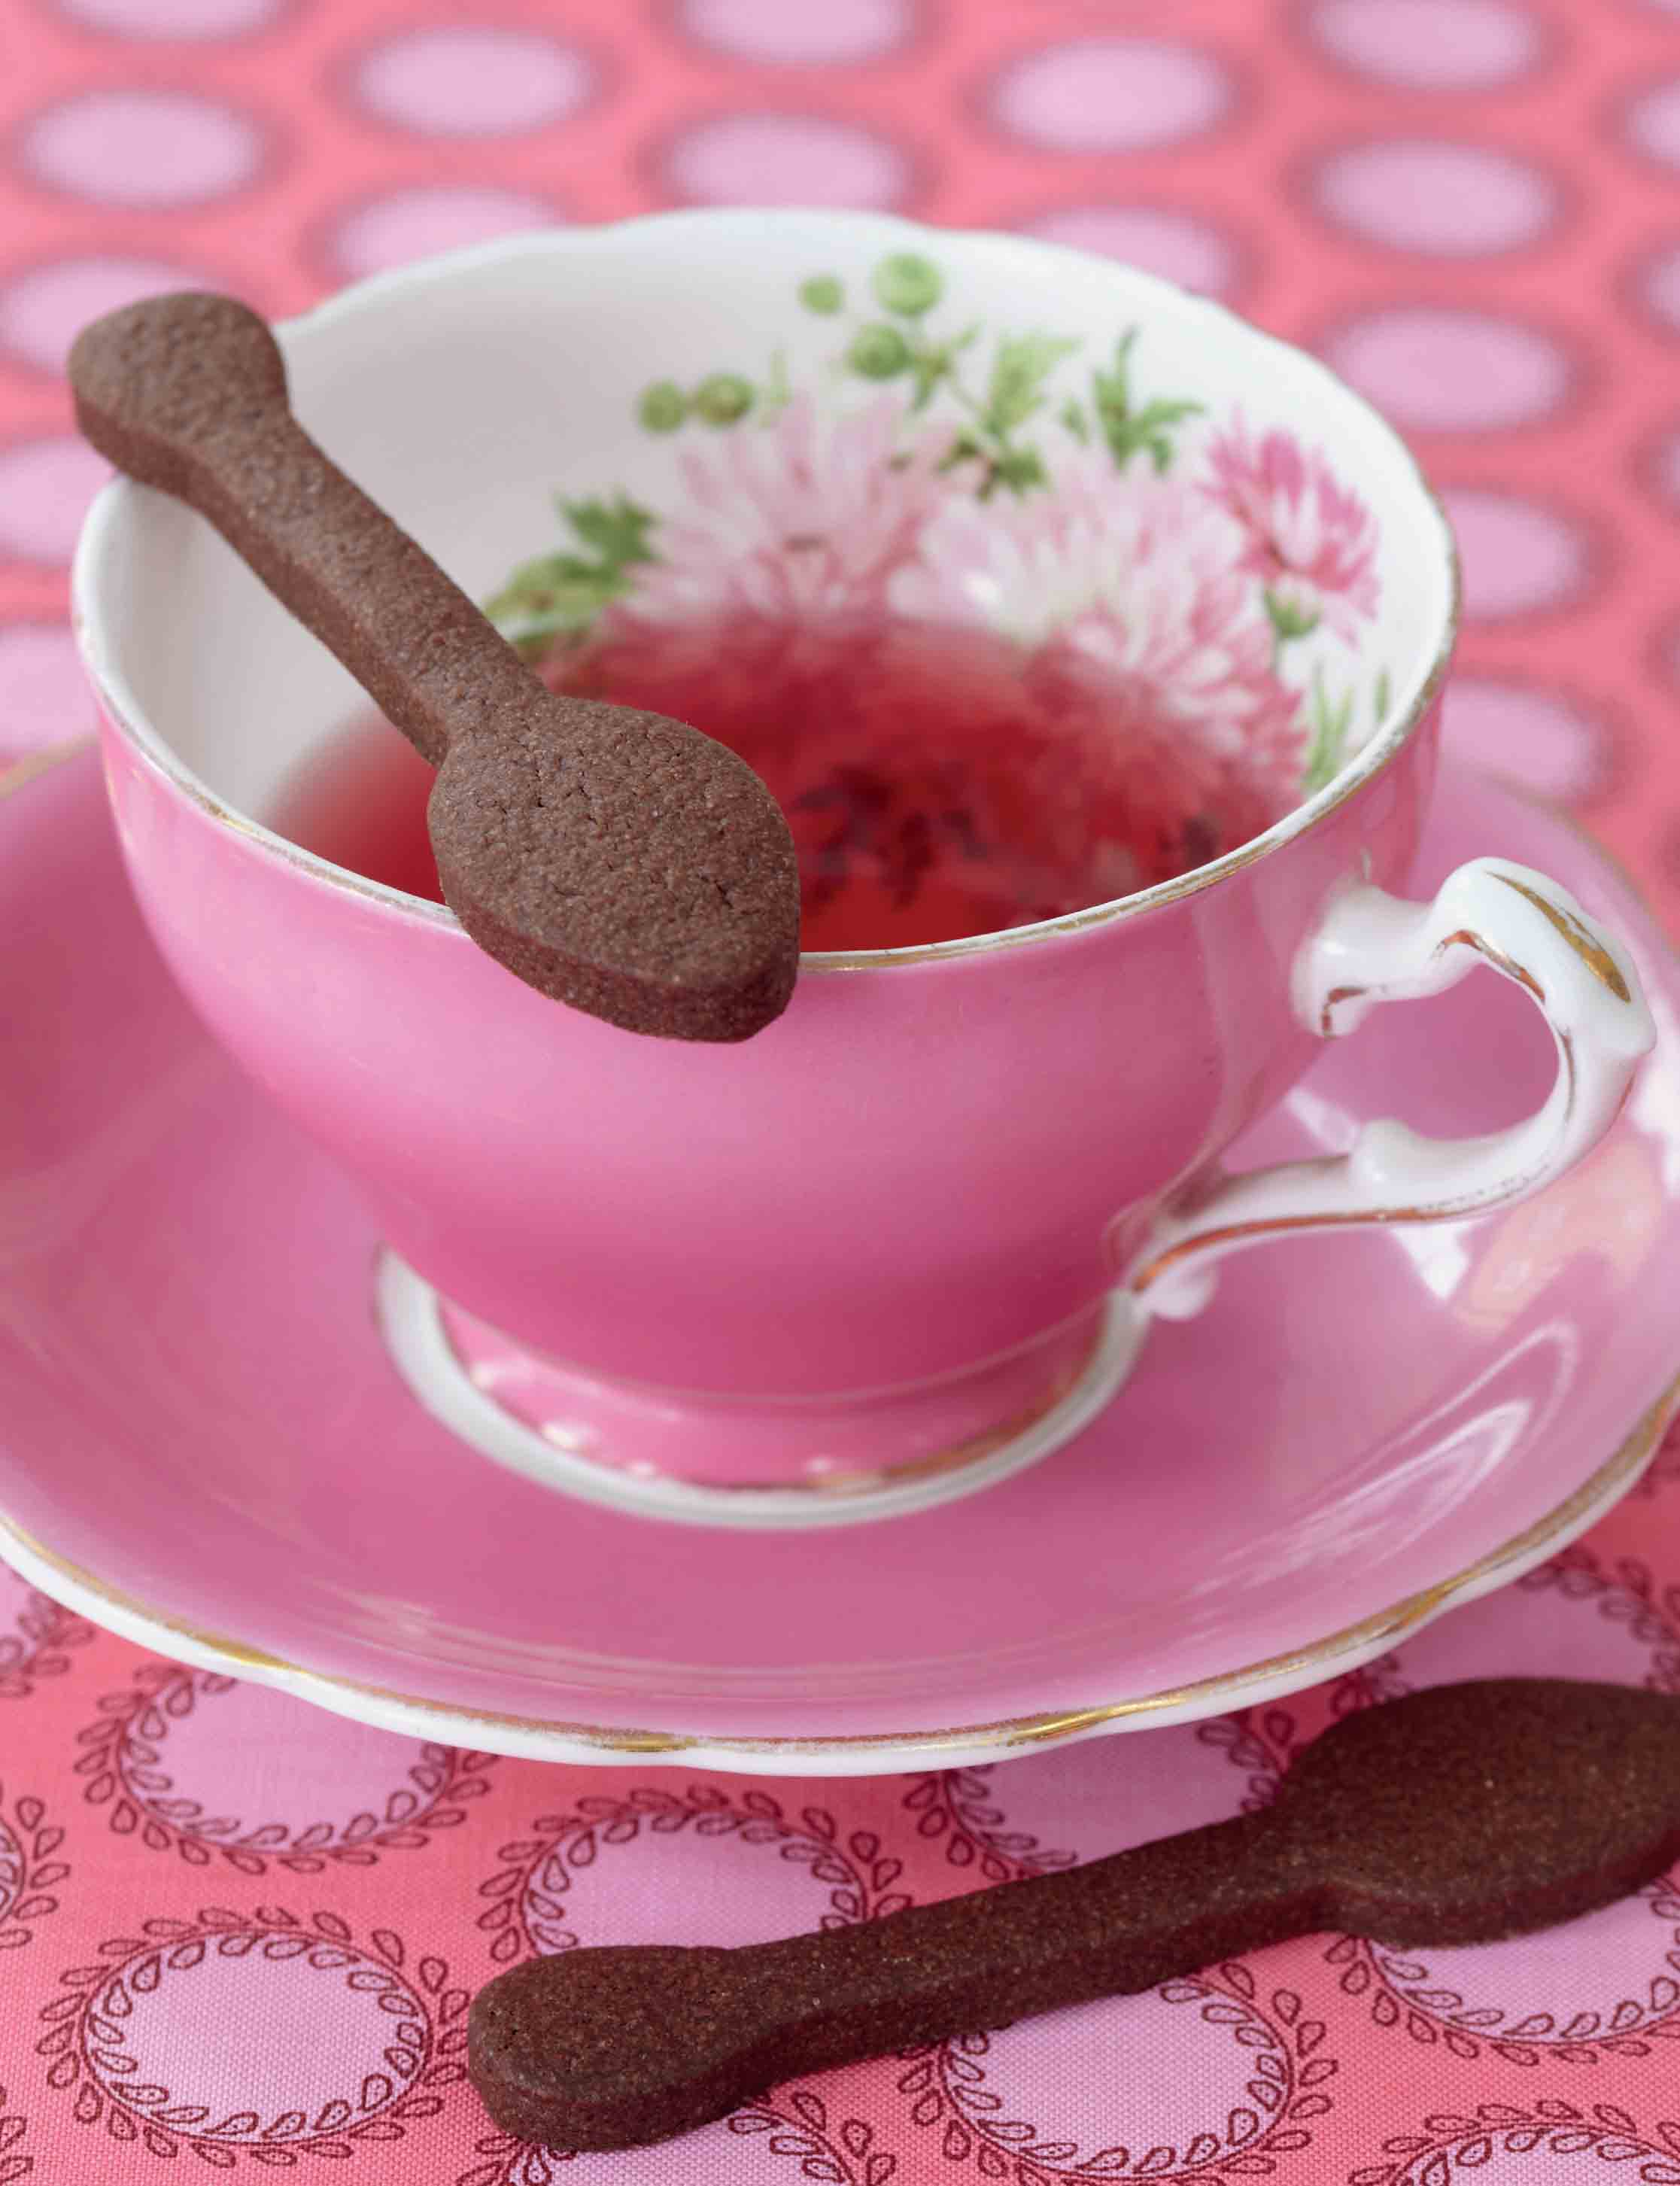 Teaspoon chocolate biscuits